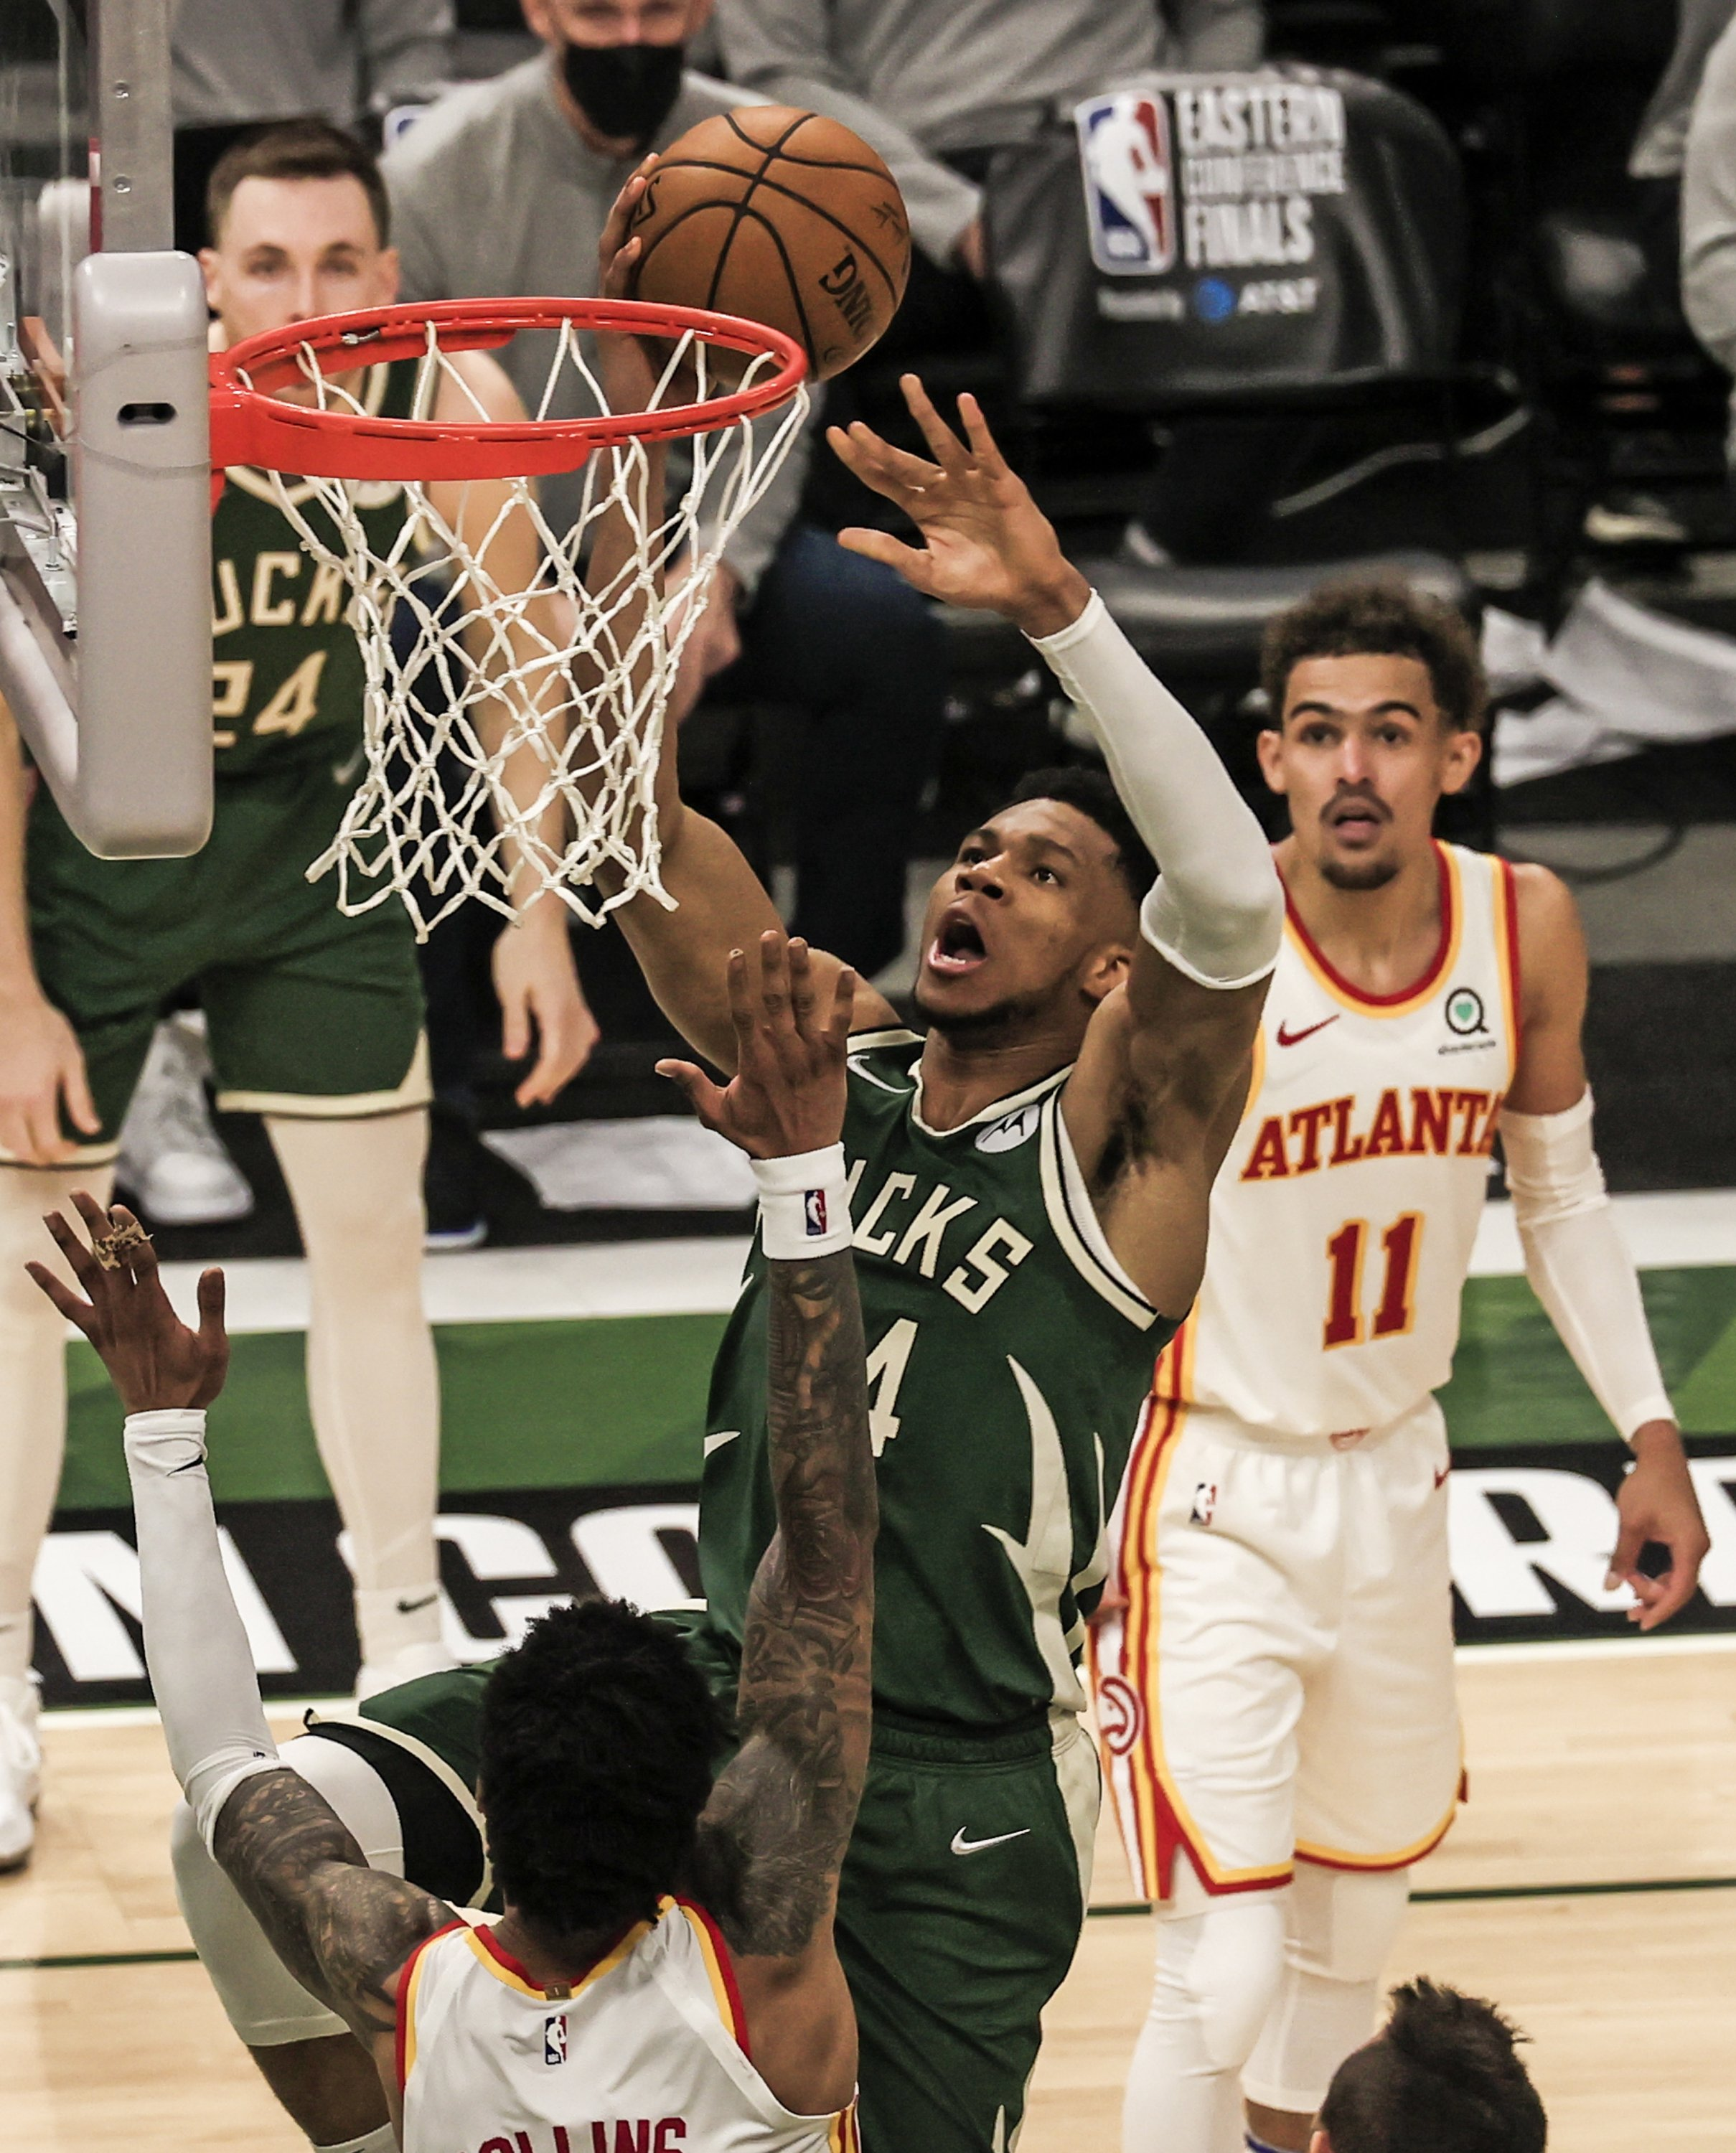 Atlanta Hawks guard Trae Young (R) watches as Milwaukee Bucks forward Giannis Antetokounmpo (C) shoots on Hawks forward John Collins (L) during Game 1 of the Eastern Conference Finals for the 2021 NBA Playoffs at Fiserv Forum, Milwaukee, Wisconsin, U.S., June 23, 2021. (EPA Photo)